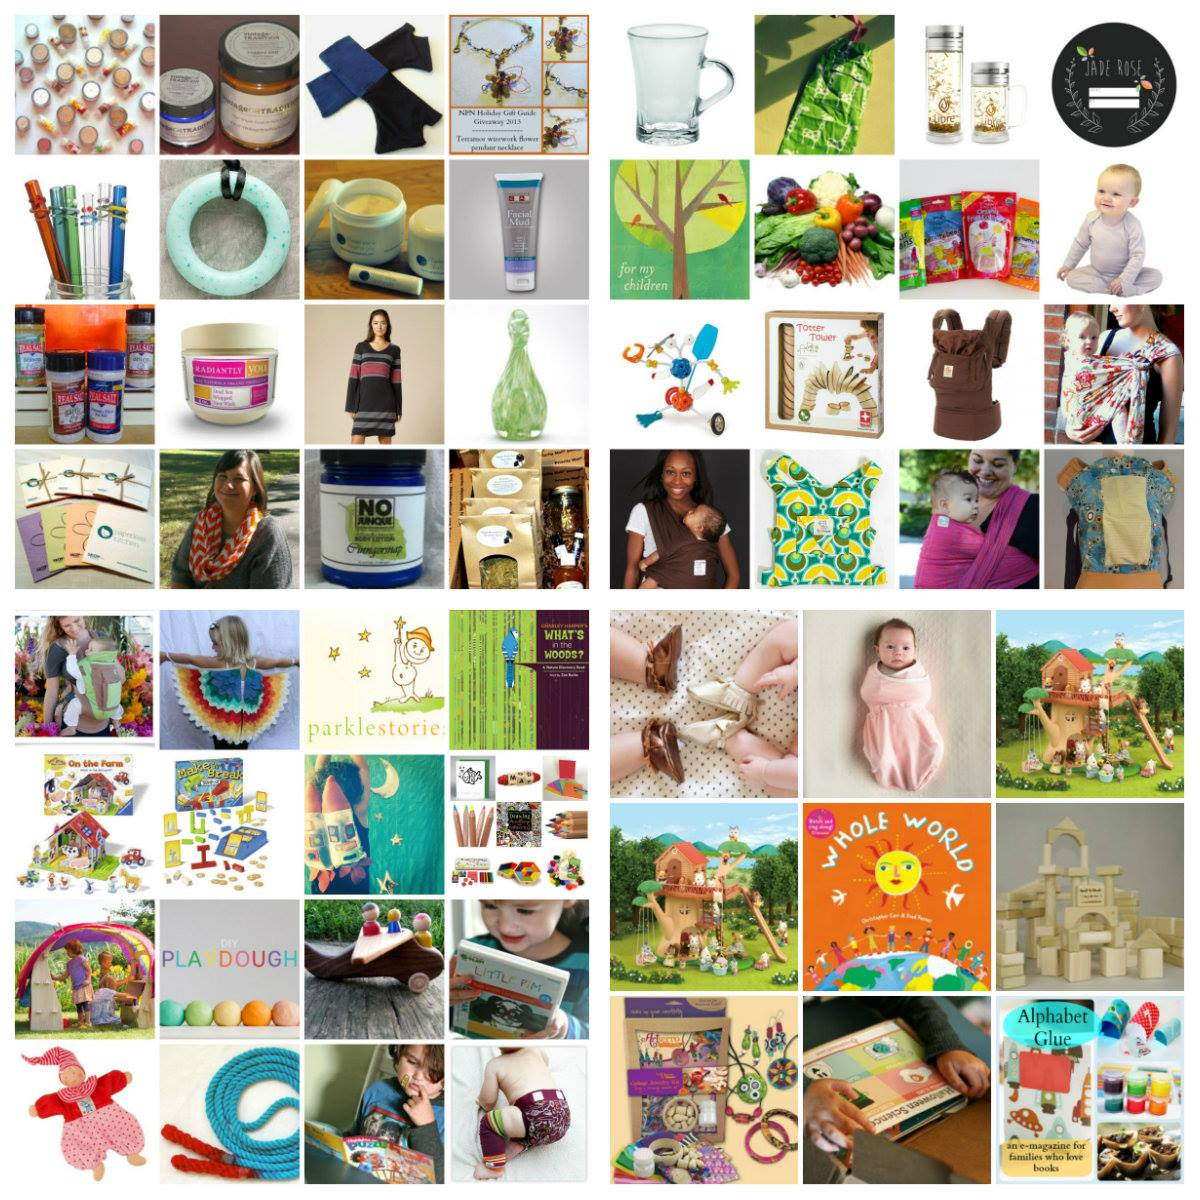 NPN Holiday Gift Guide & Giveaway {12.6; 26 winners; US; $2,500}